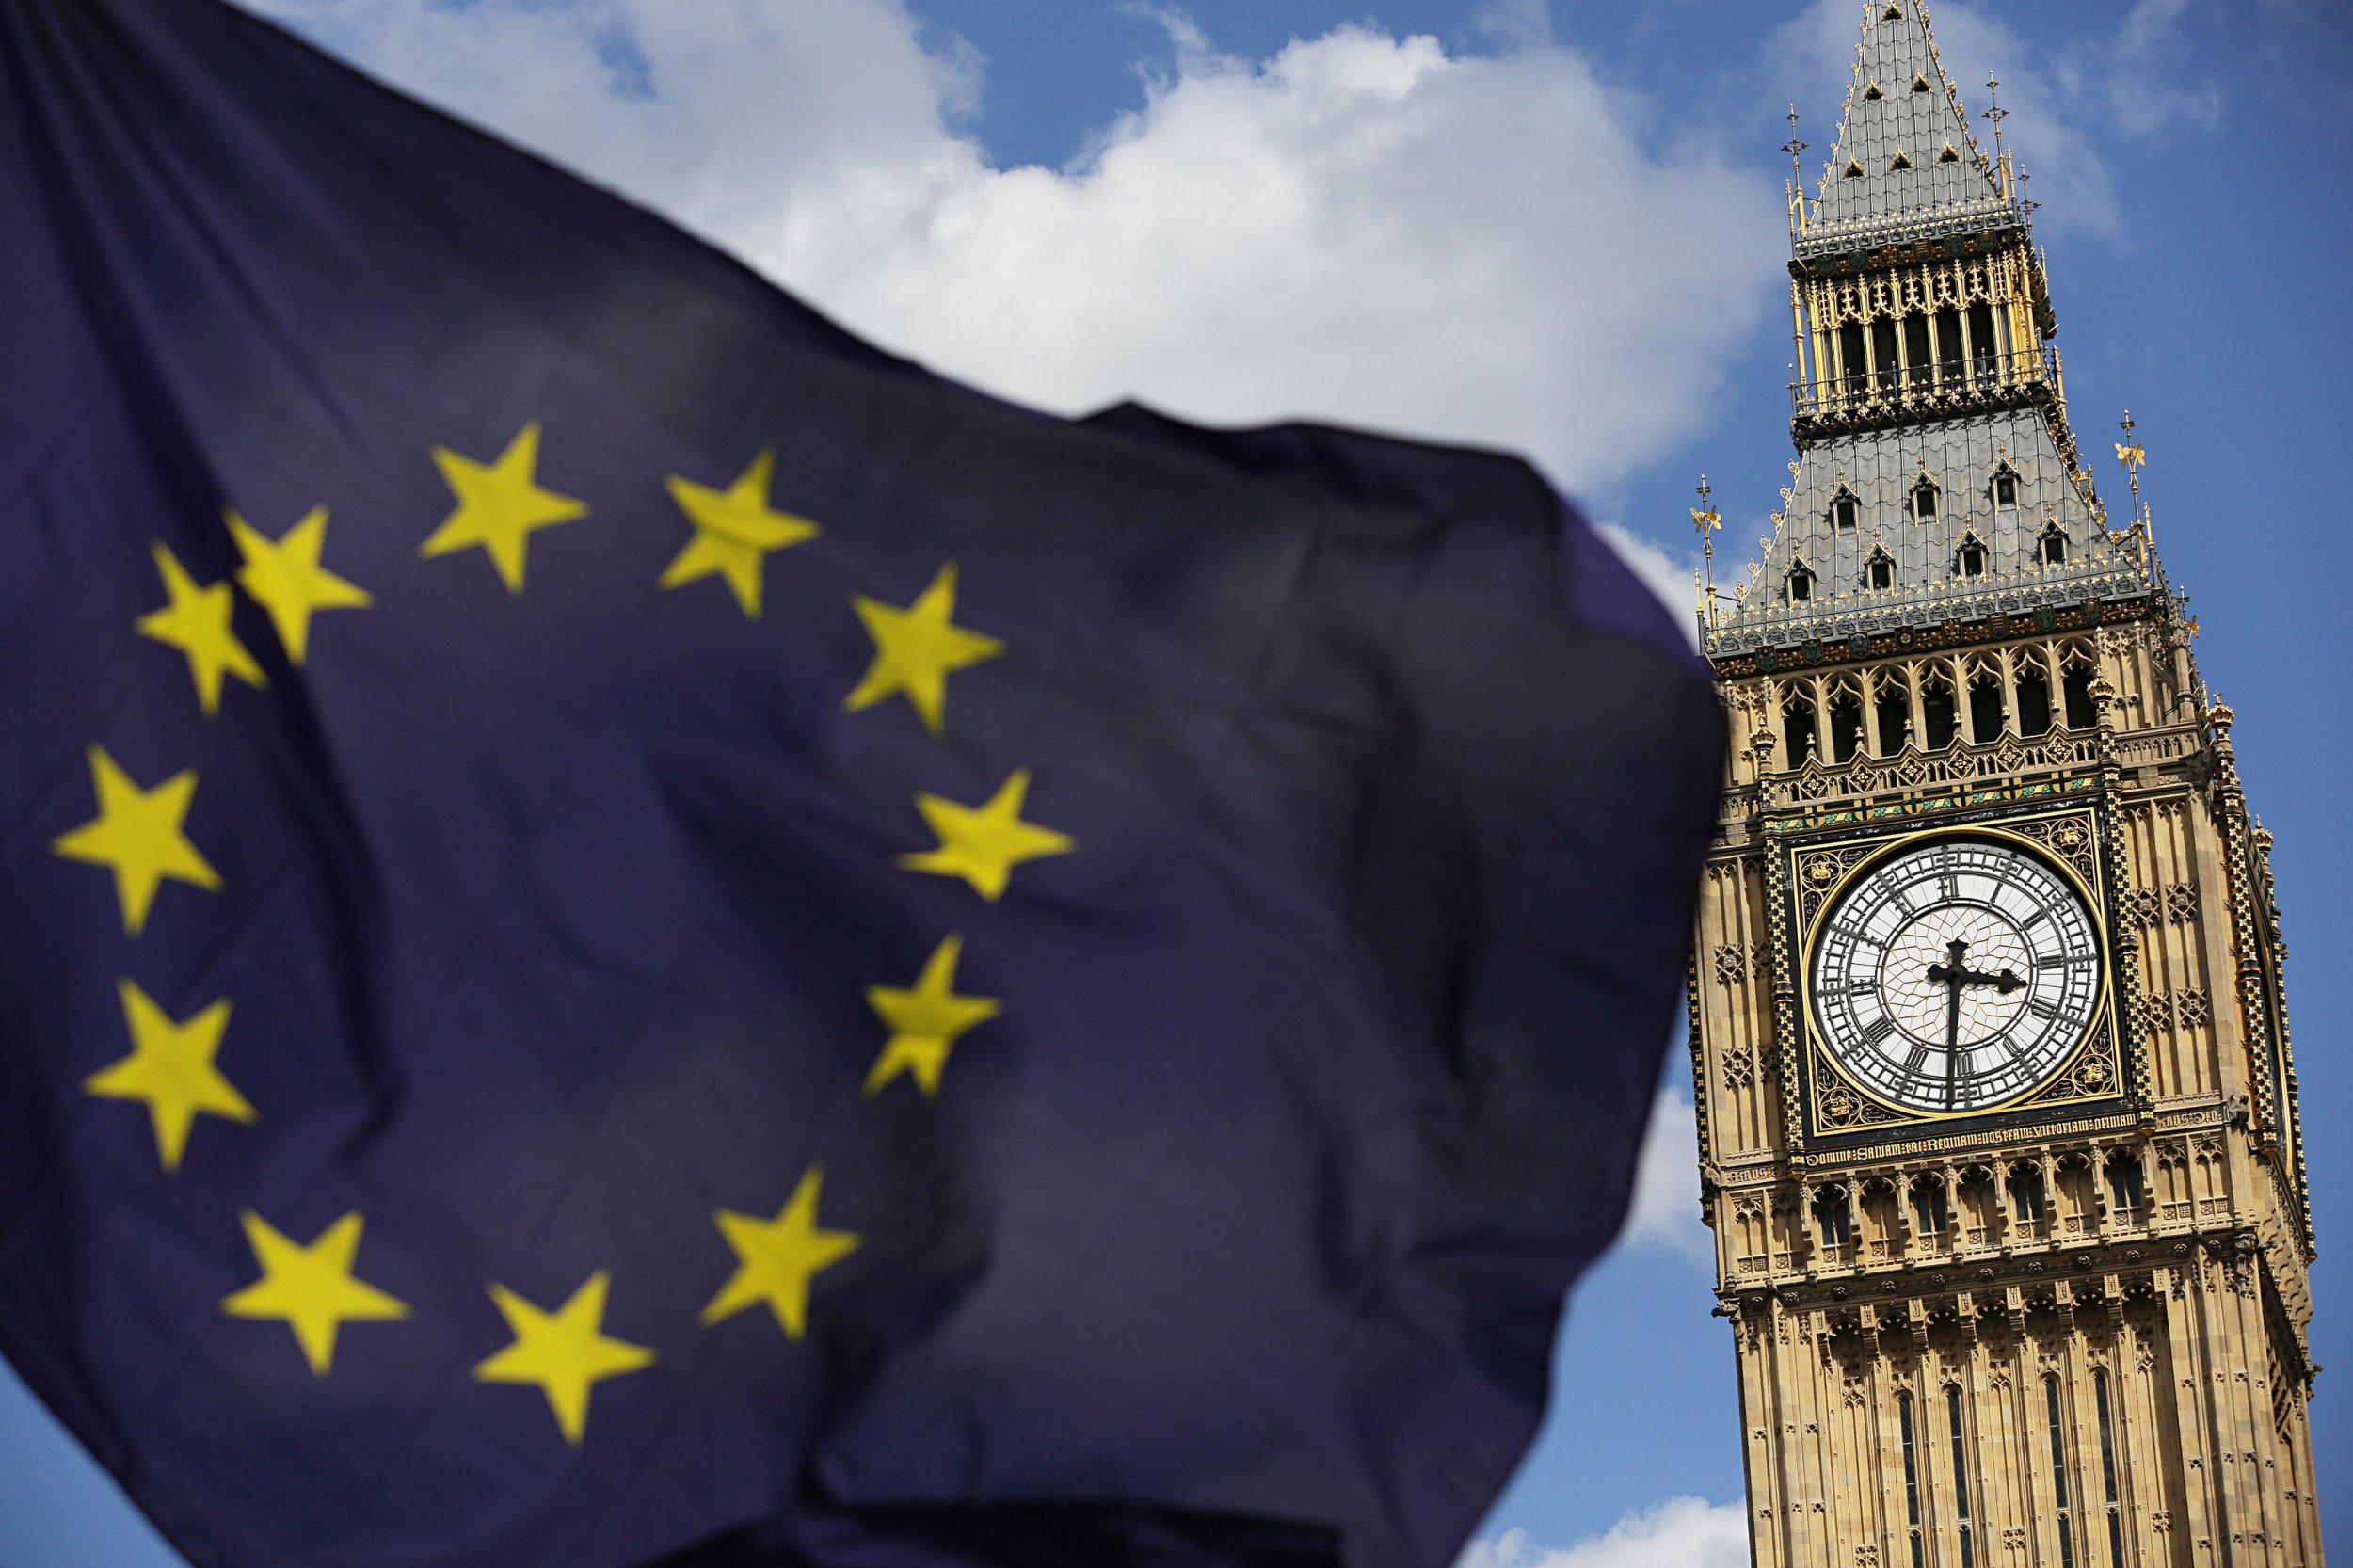 File photo dated 02/07/16 of a European Union flag in front of Big Ben, as legislation paving the way for Theresa May to start the Brexit process will be published today. PRESS ASSOCIATION Photo. Issue date: Thursday January 26, 2017. The first salvo in the parliamentary battle will be fired as ministers produce a Bill which will allow the UK to trigger Article 50, the formal procedure for leaving the European Union. See PA story POLITICS Brexit. Photo credit should read: Daniel Leal-Olivas/PA Wire